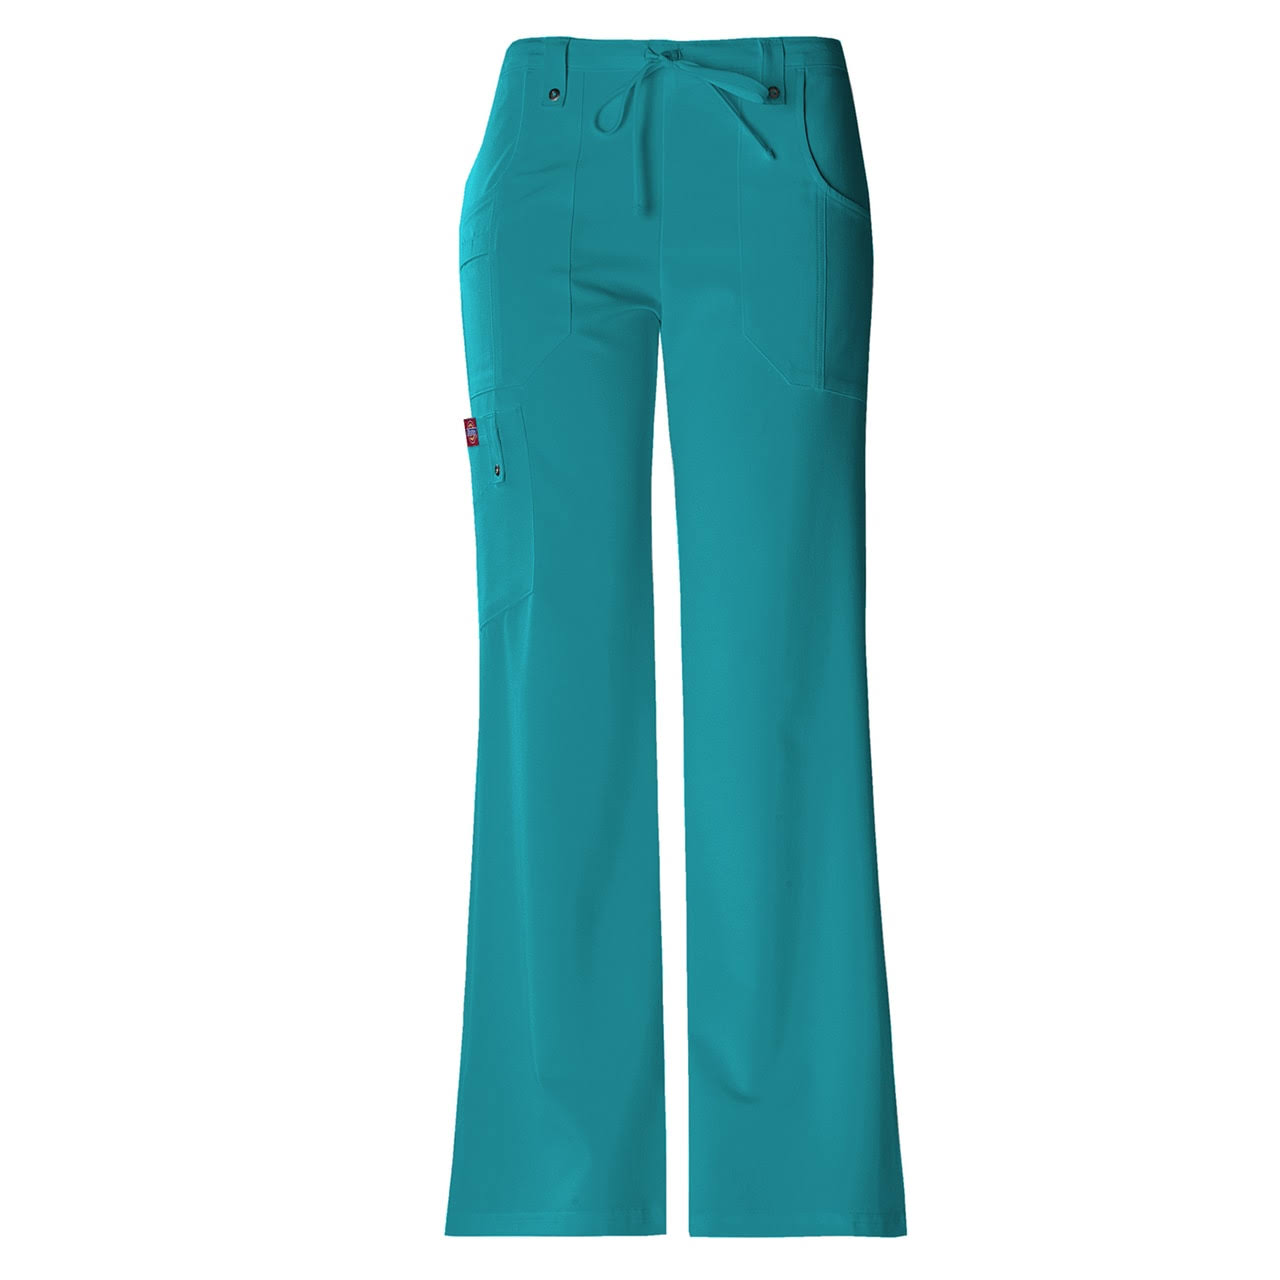 Dickies Xtreme Stretch Drawstring Flare Scrubs Pant - Teal, Large